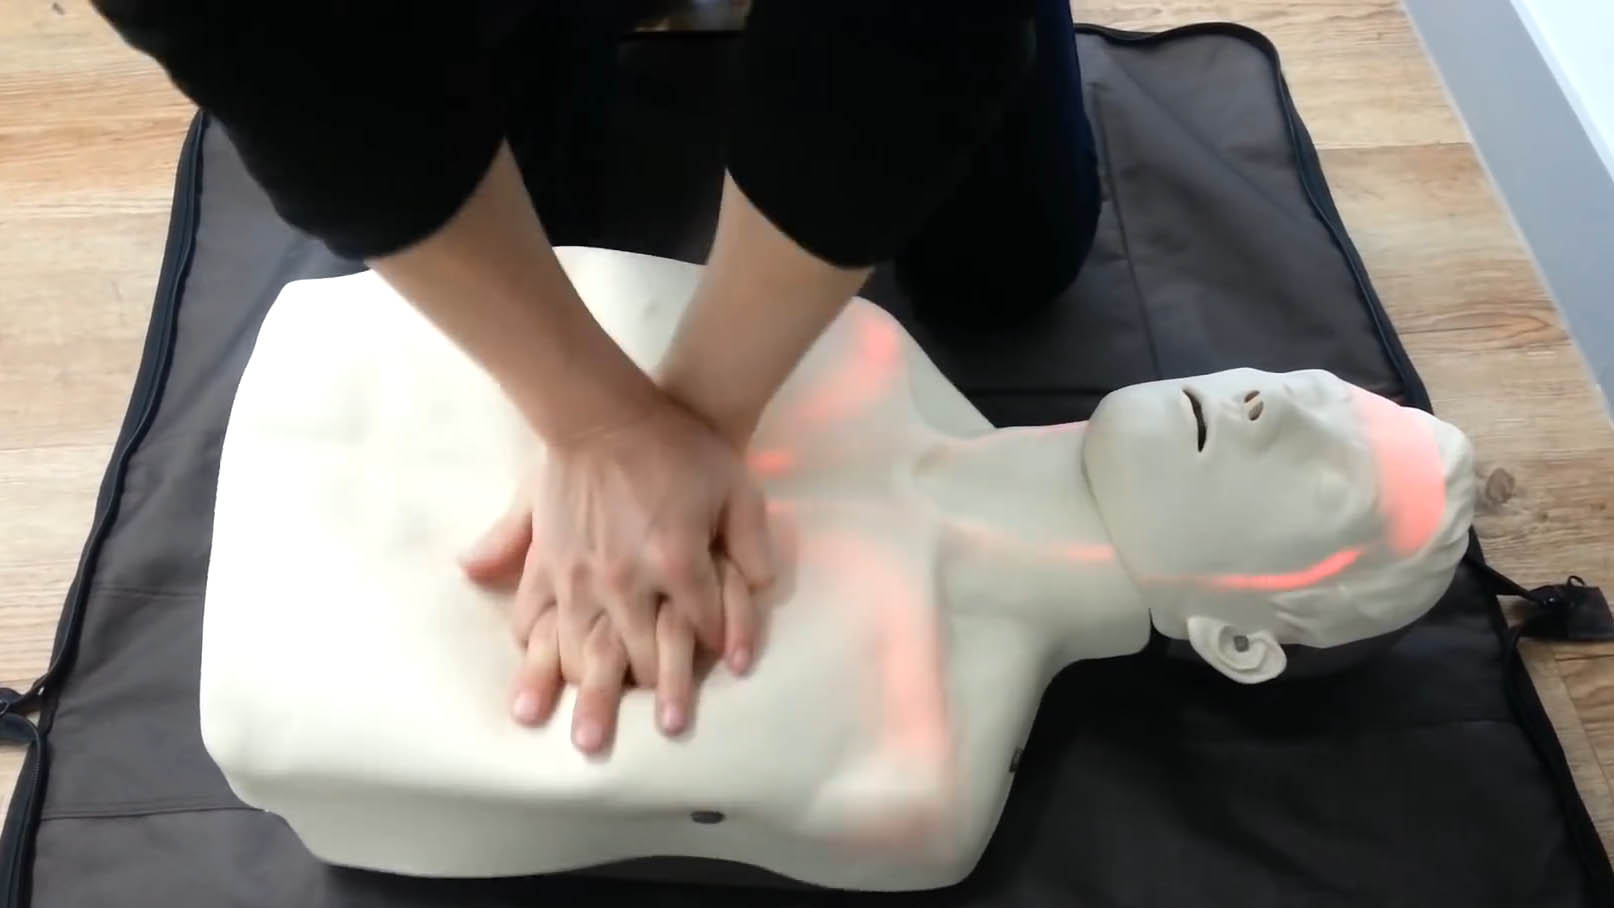 CPR Quality Indicating Lights